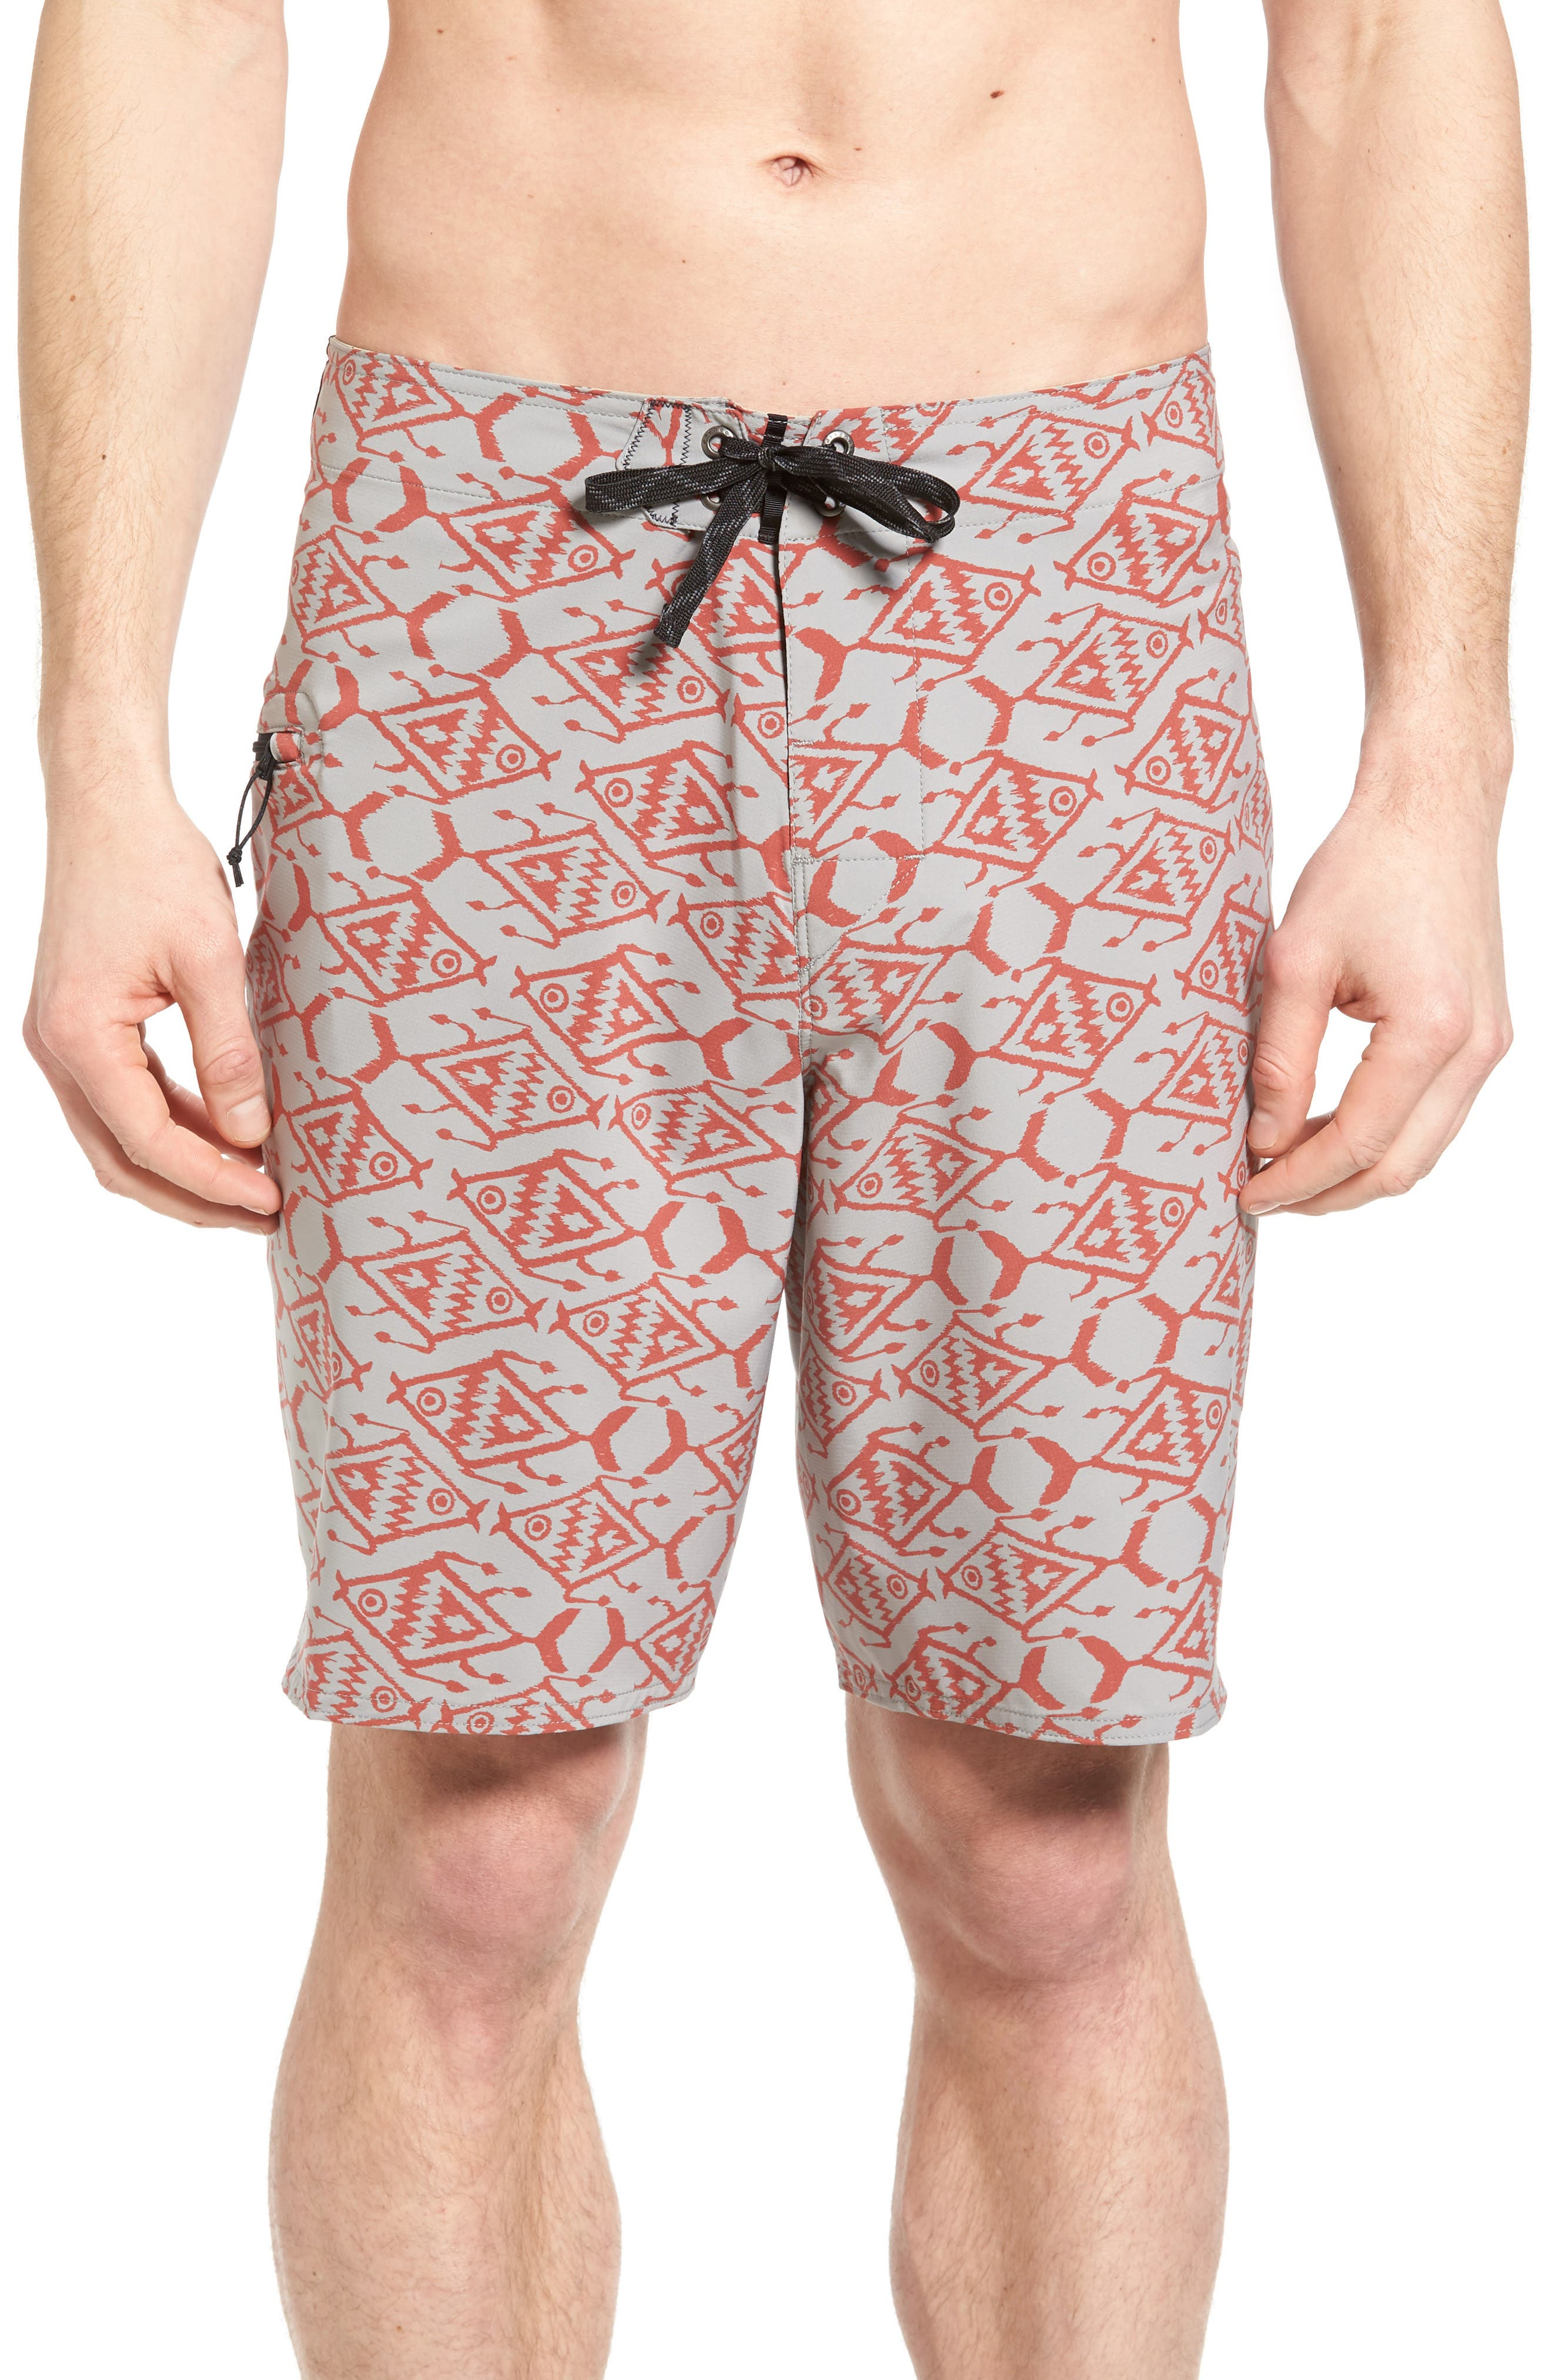 Stretch Planing Board Shorts,                             Main thumbnail 1, color,                             Spiced Coral